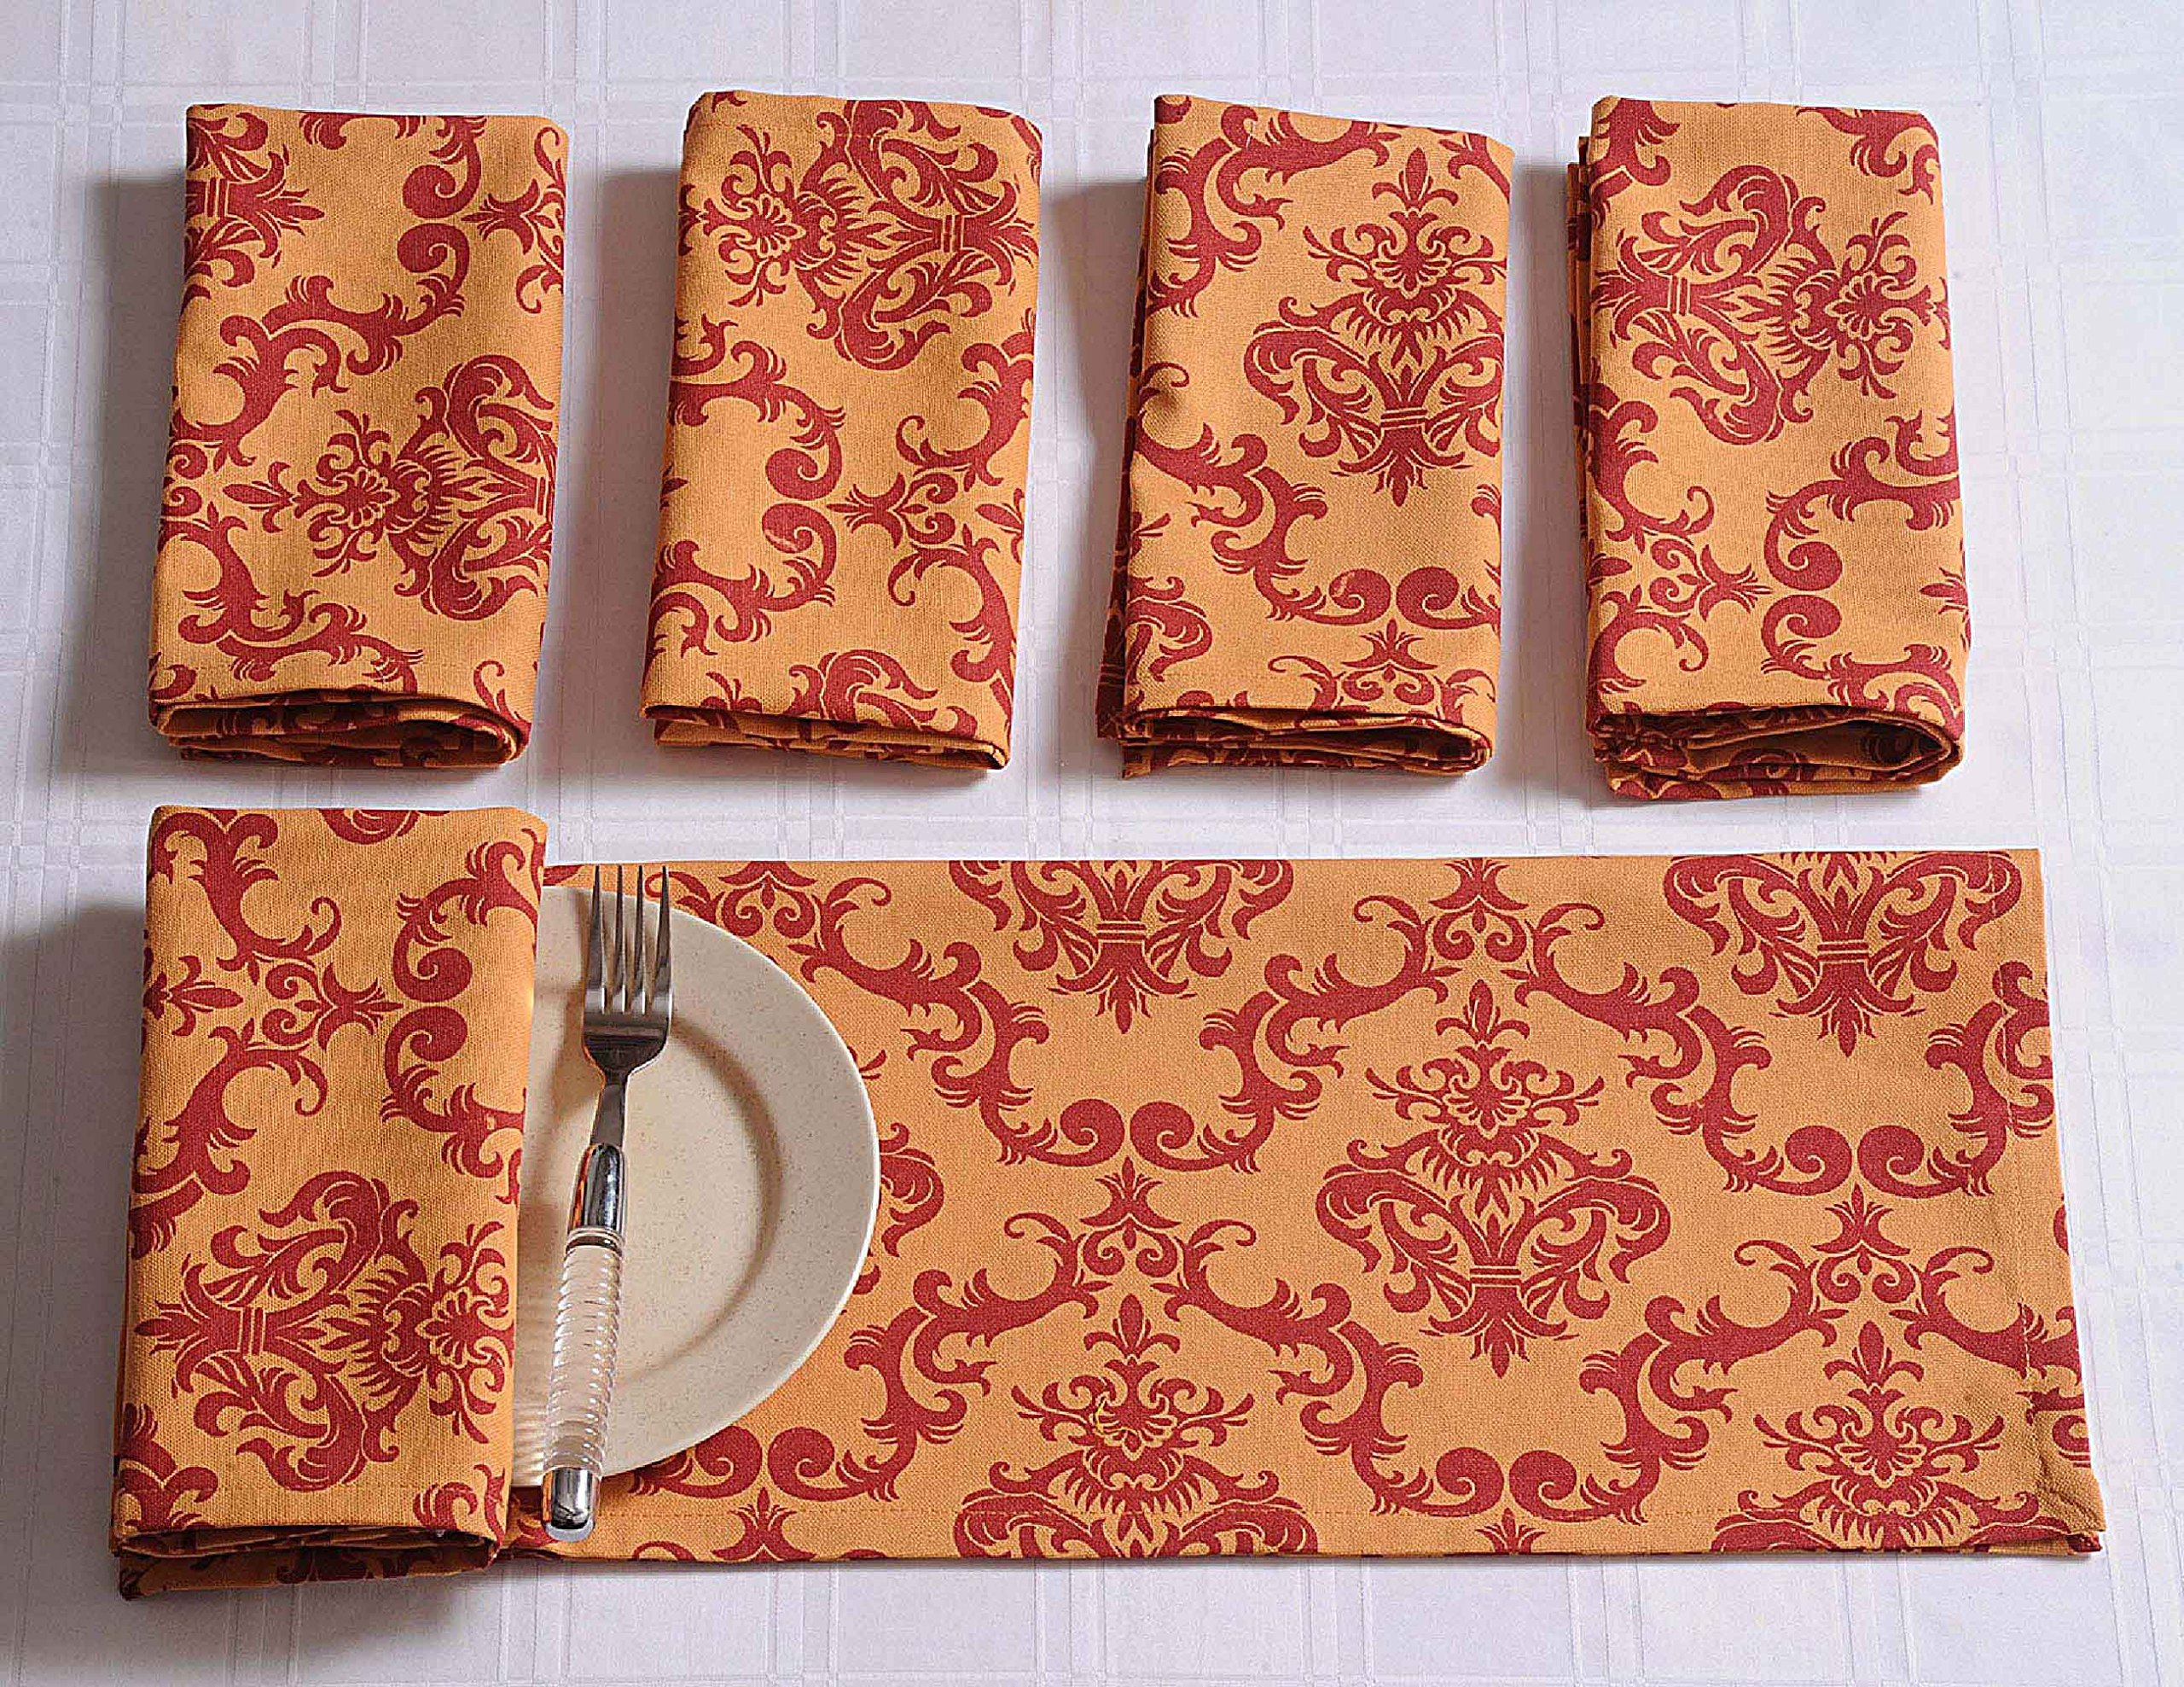 ShalinIndia Cotton Drink Beverage Cloth Napkins - 10'' x 10'' - Set of 100 Premium Table Linens Perfect for Weddings & Parties - Orange and Red Damask by ShalinIndia